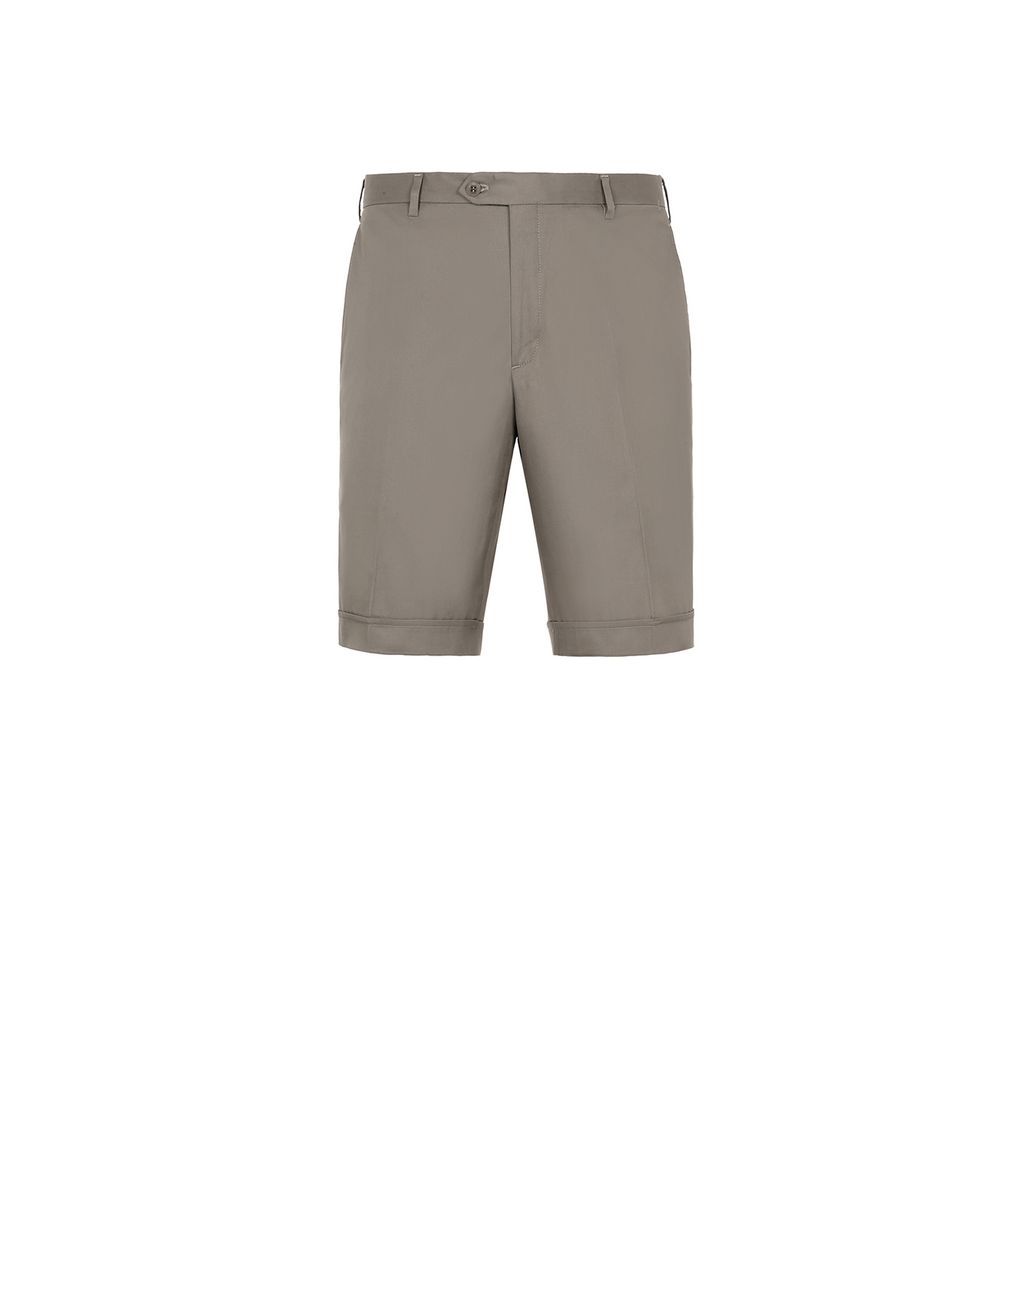 BRIONI Green Short Trousers Trousers Man f